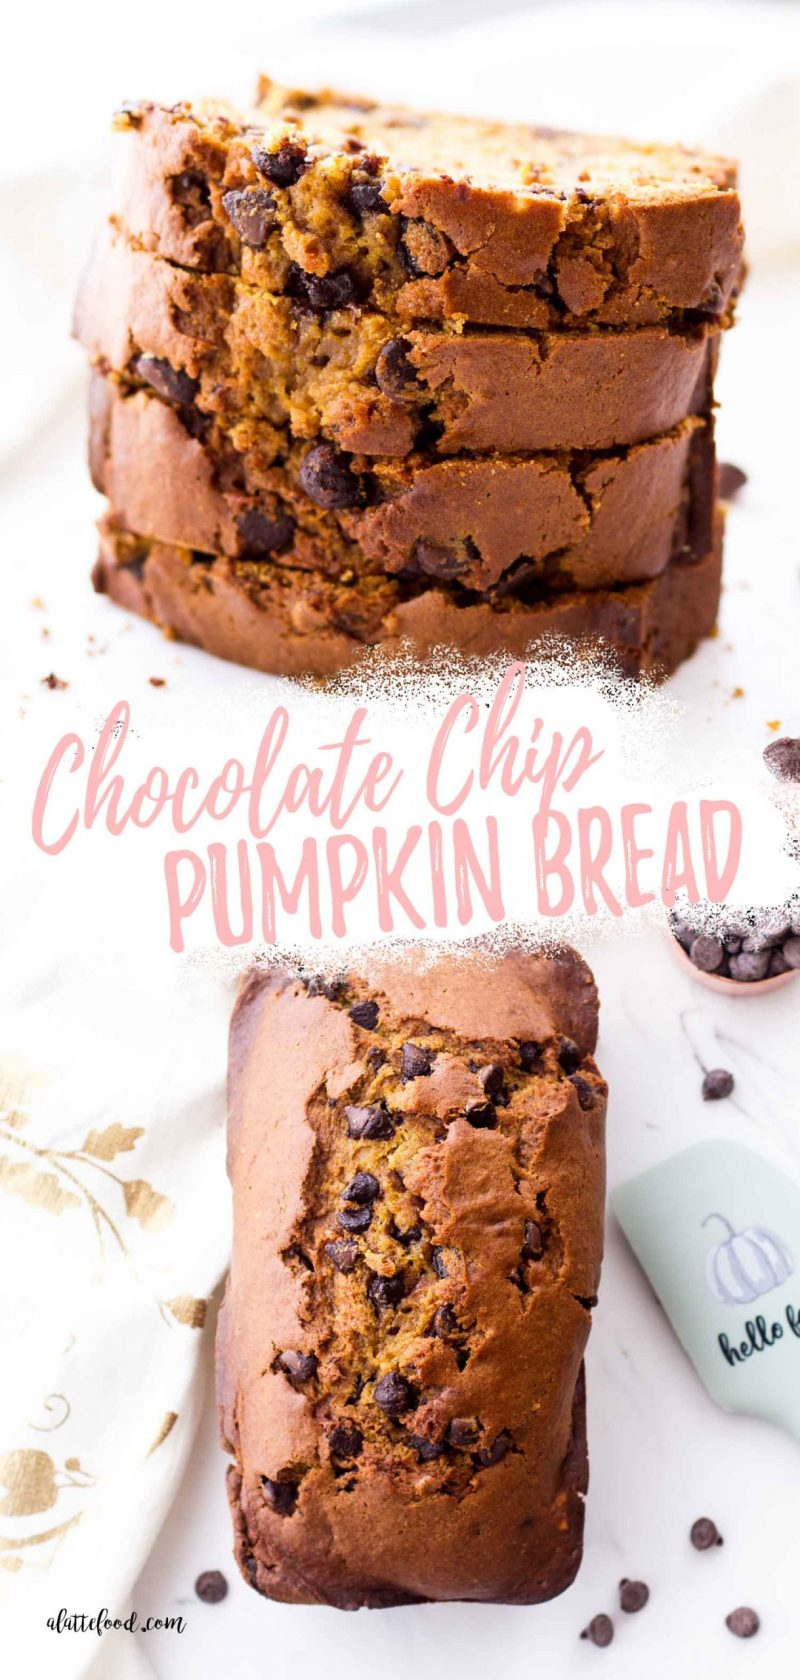 pumpkin bread slices with chocolate chips (collage and text)